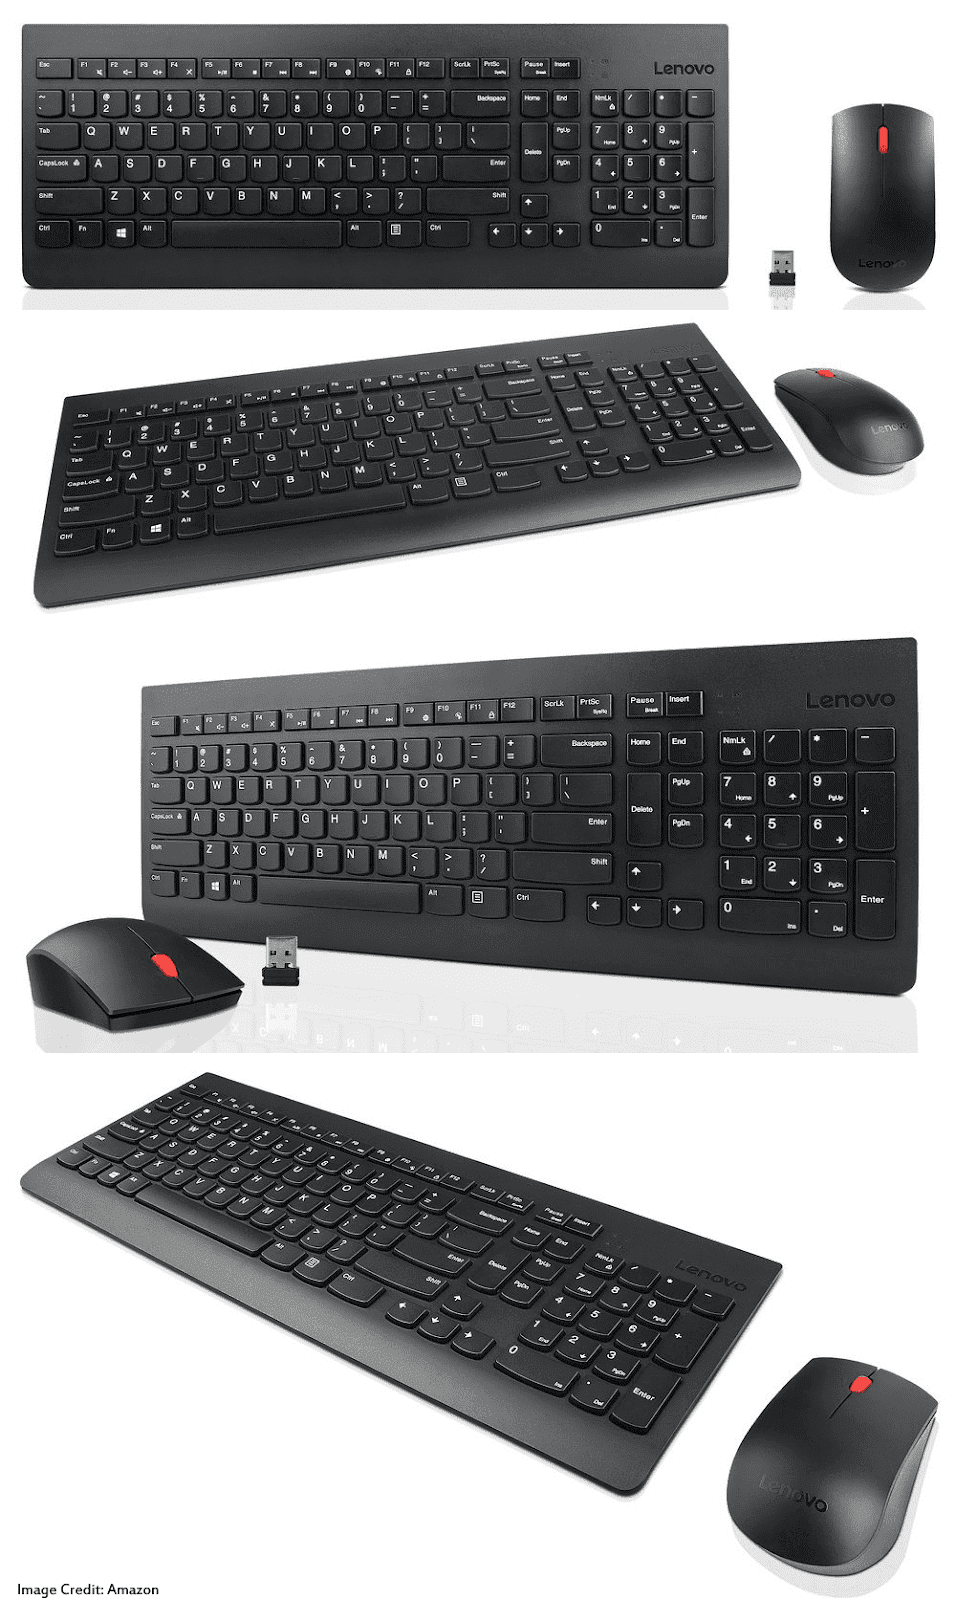 The image of Lenovo 4X30M39458 wireless keyboard and mouse combo. Its color is black. Moreover, the keyboard has a total of 104 keys and the mouse a total of 3 buttons. Furthermore, It has a warranty of 1 year.